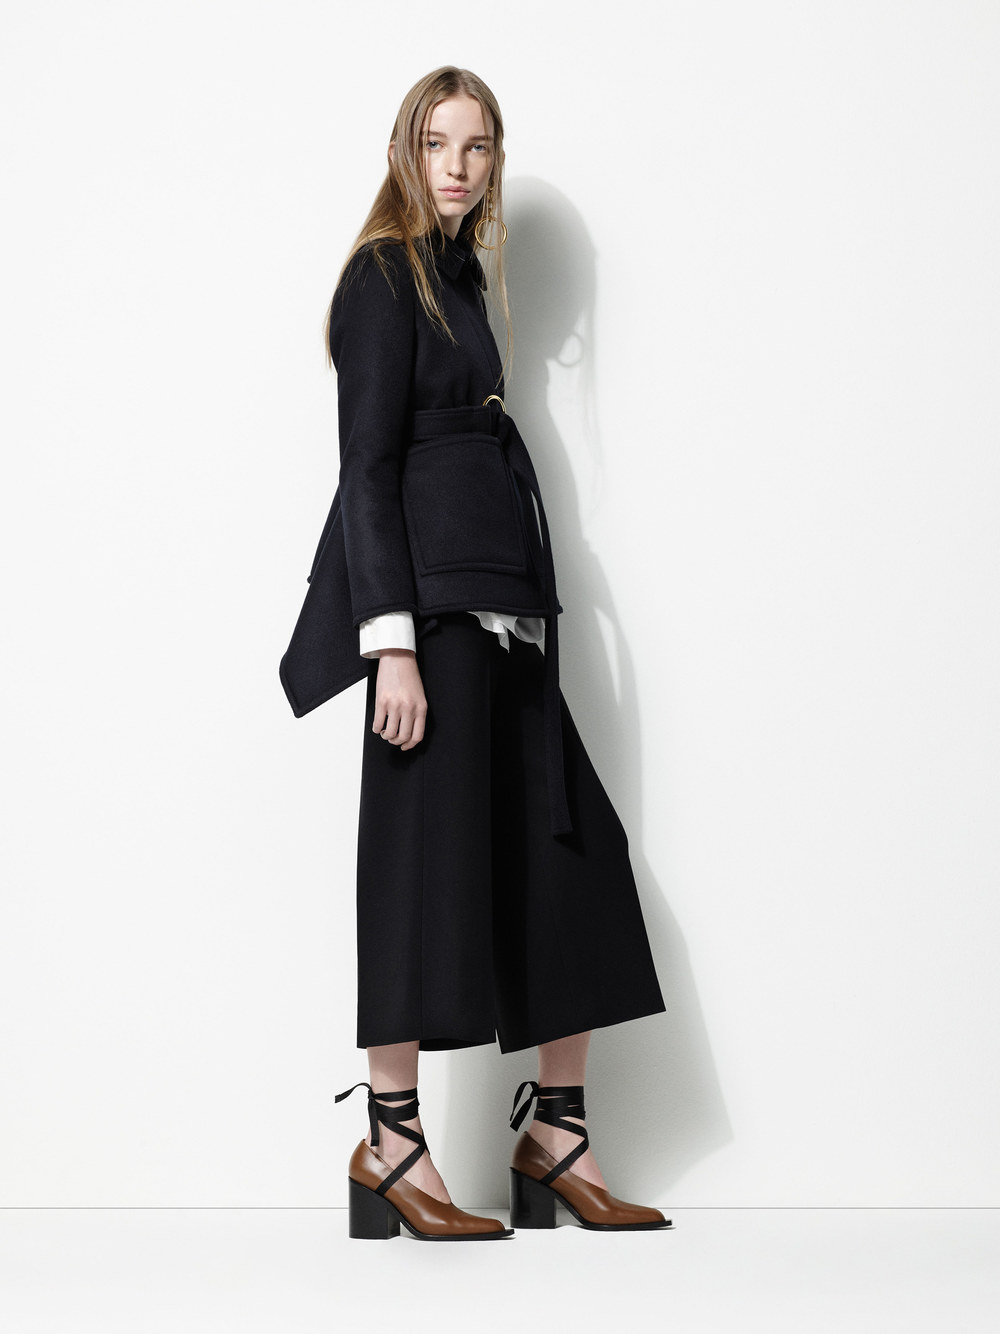 marni-pre-fall-2016-lookbook-06.jpg